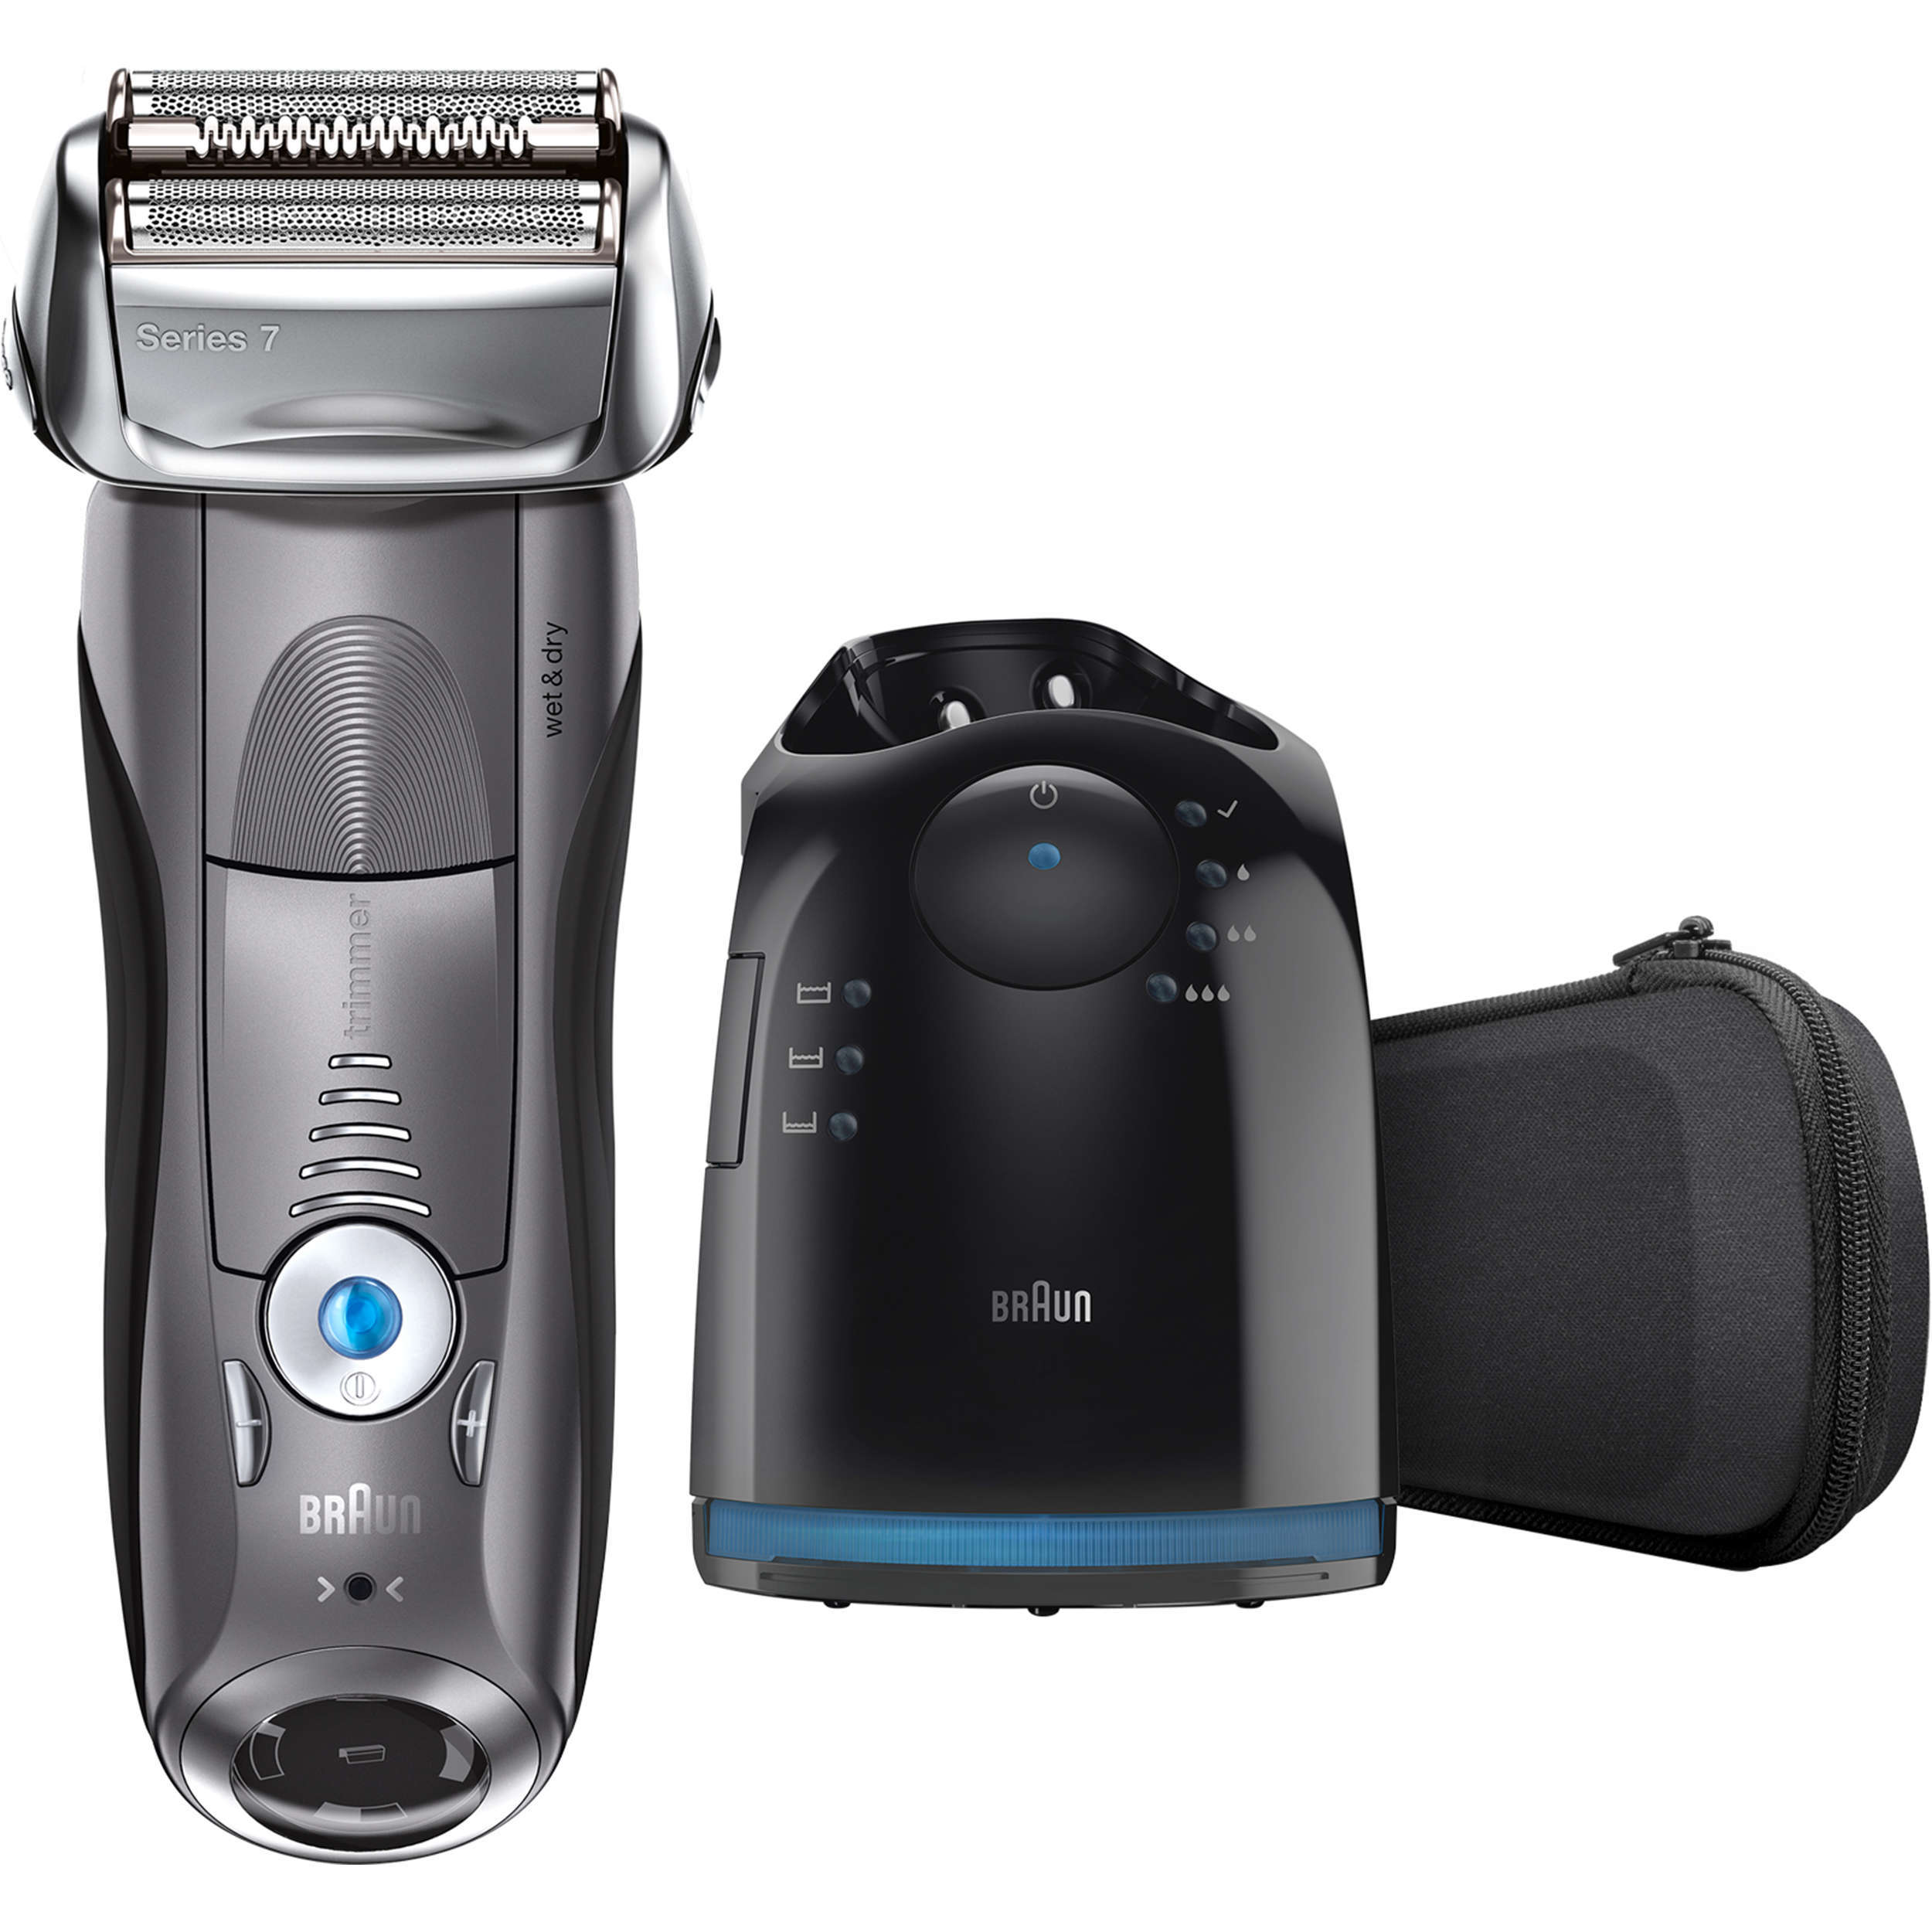 Braun Series 7 7865cc Men's Electric Foil Shaver ($25 Rebate Available), Wet and Dry Razor with Clean & Charge Station